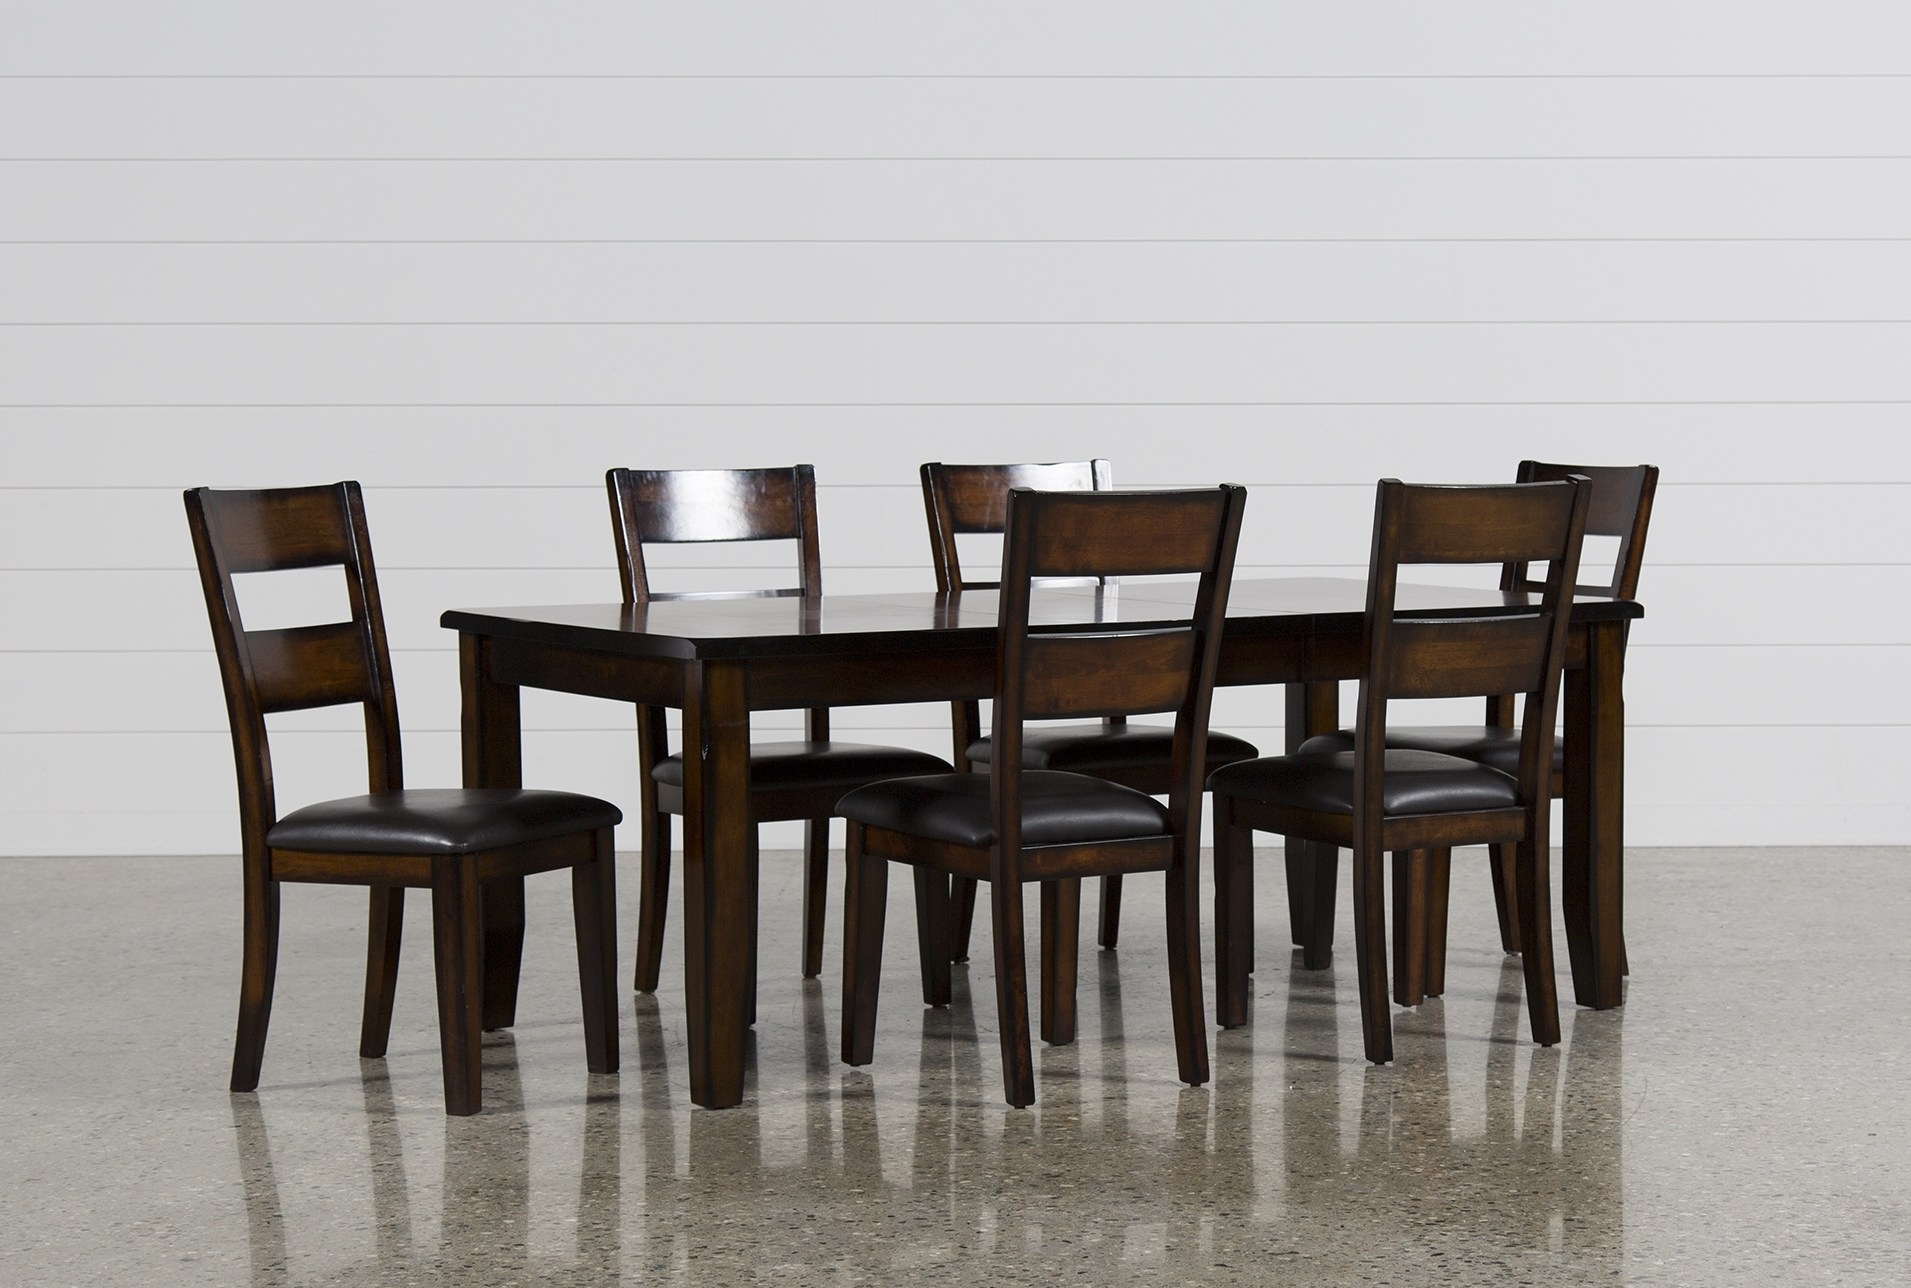 Likeable Living Spaces Dining Room Tables Of S #43937 | Forazhouse Throughout Best And Newest Mallard 7 Piece Extension Dining Sets (Image 6 of 20)